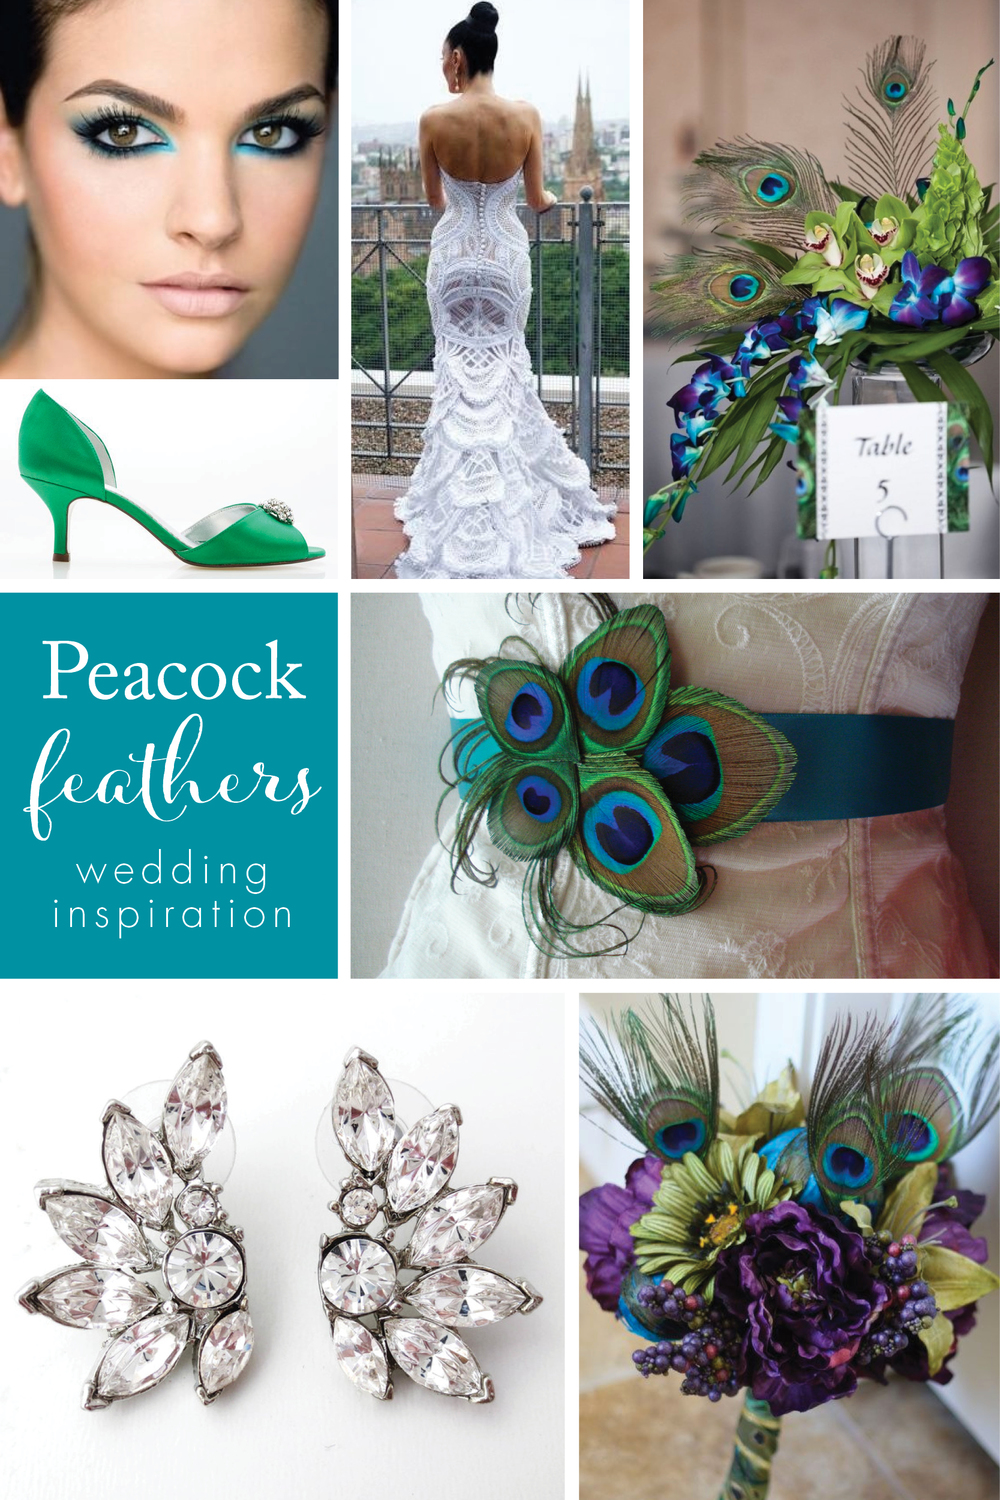 Peacock-Mood-Board.jpg